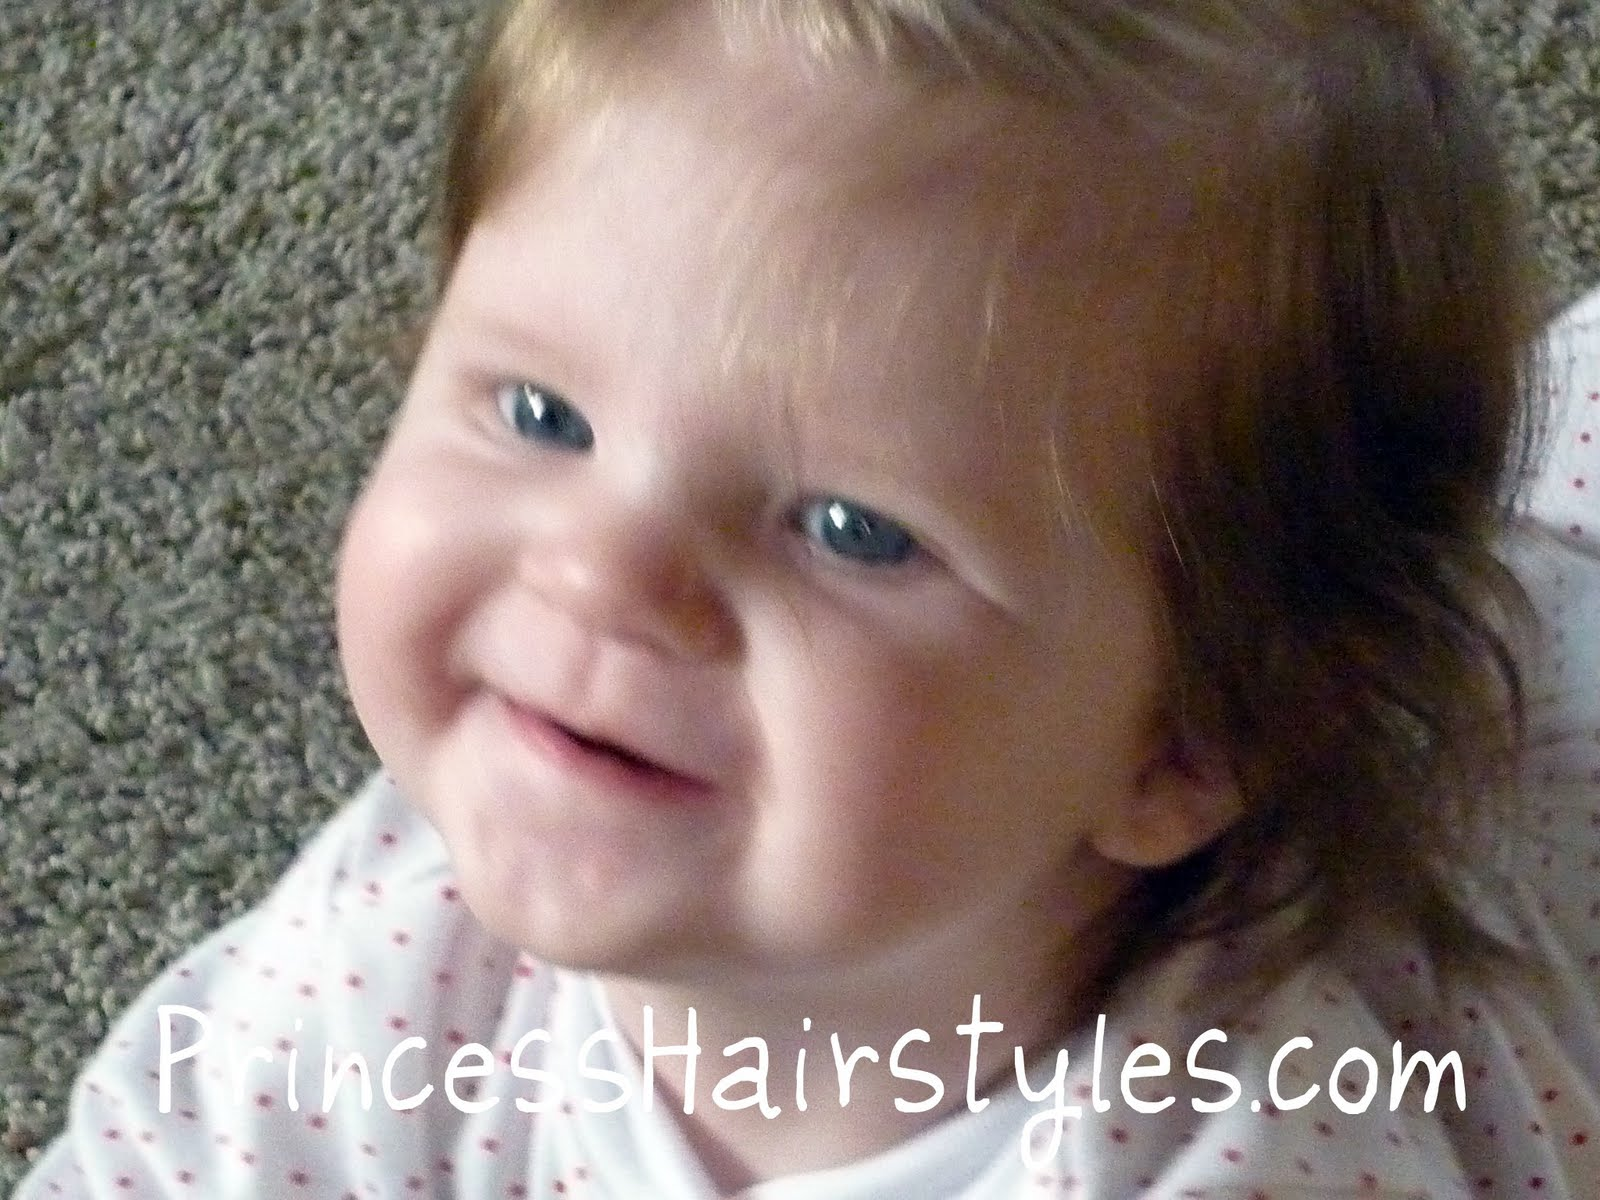 Baby Hairstyles  Tiny Twists  Hairstyles For Girls  Princess